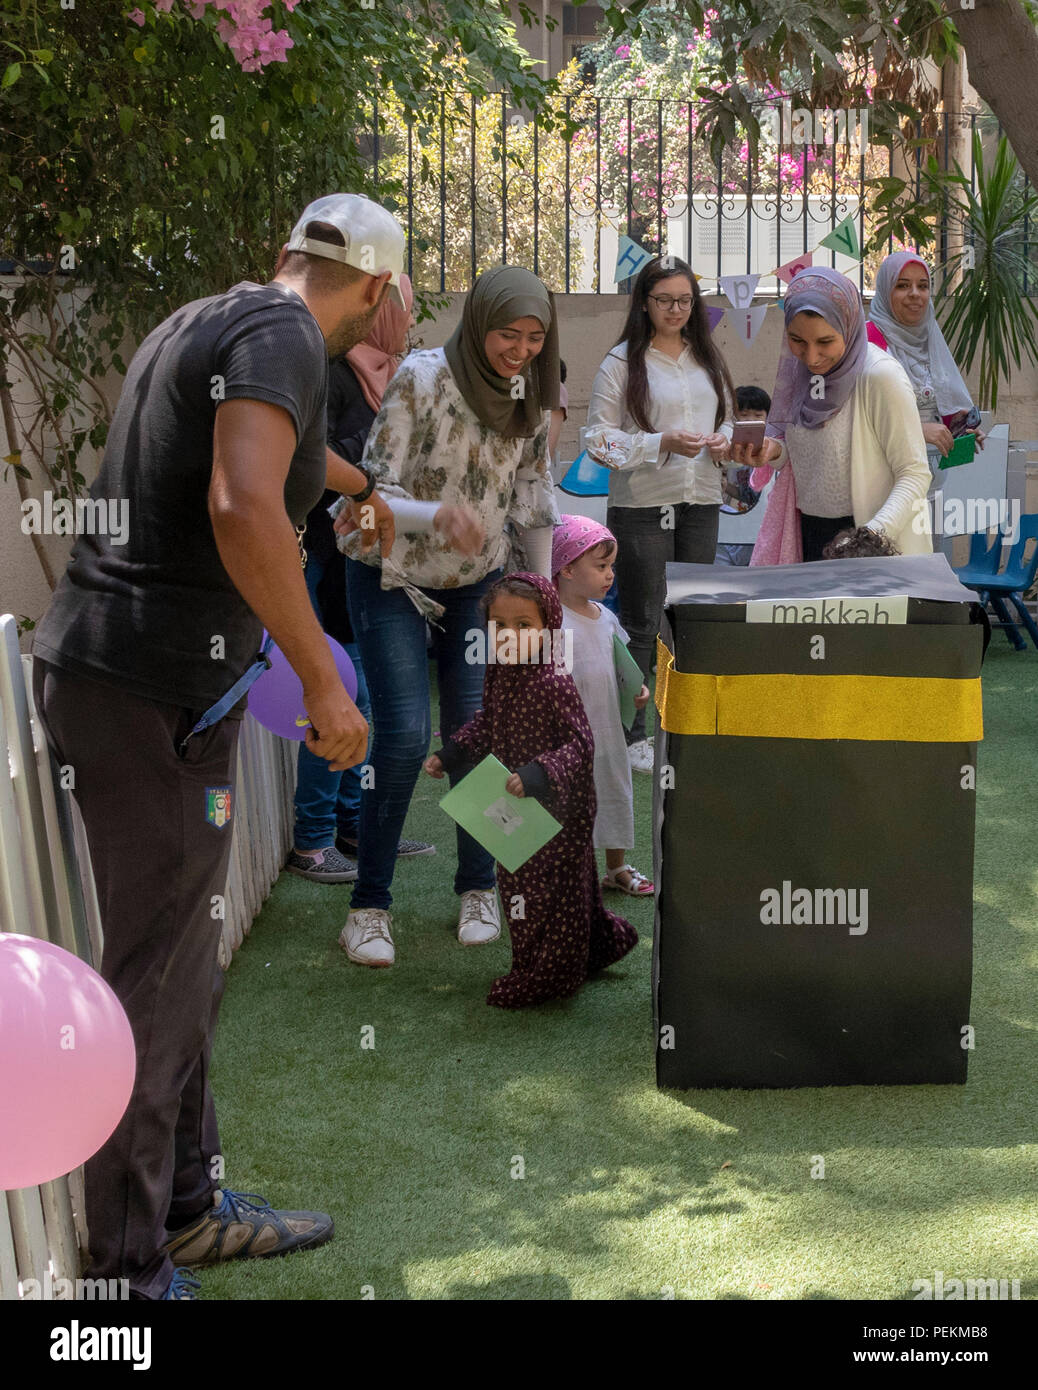 Cairo, Egypt. Children at  pre-school celebrating the forthcoming eid (holiday) by walking around an imitation Meccan kaaba. - Stock Image